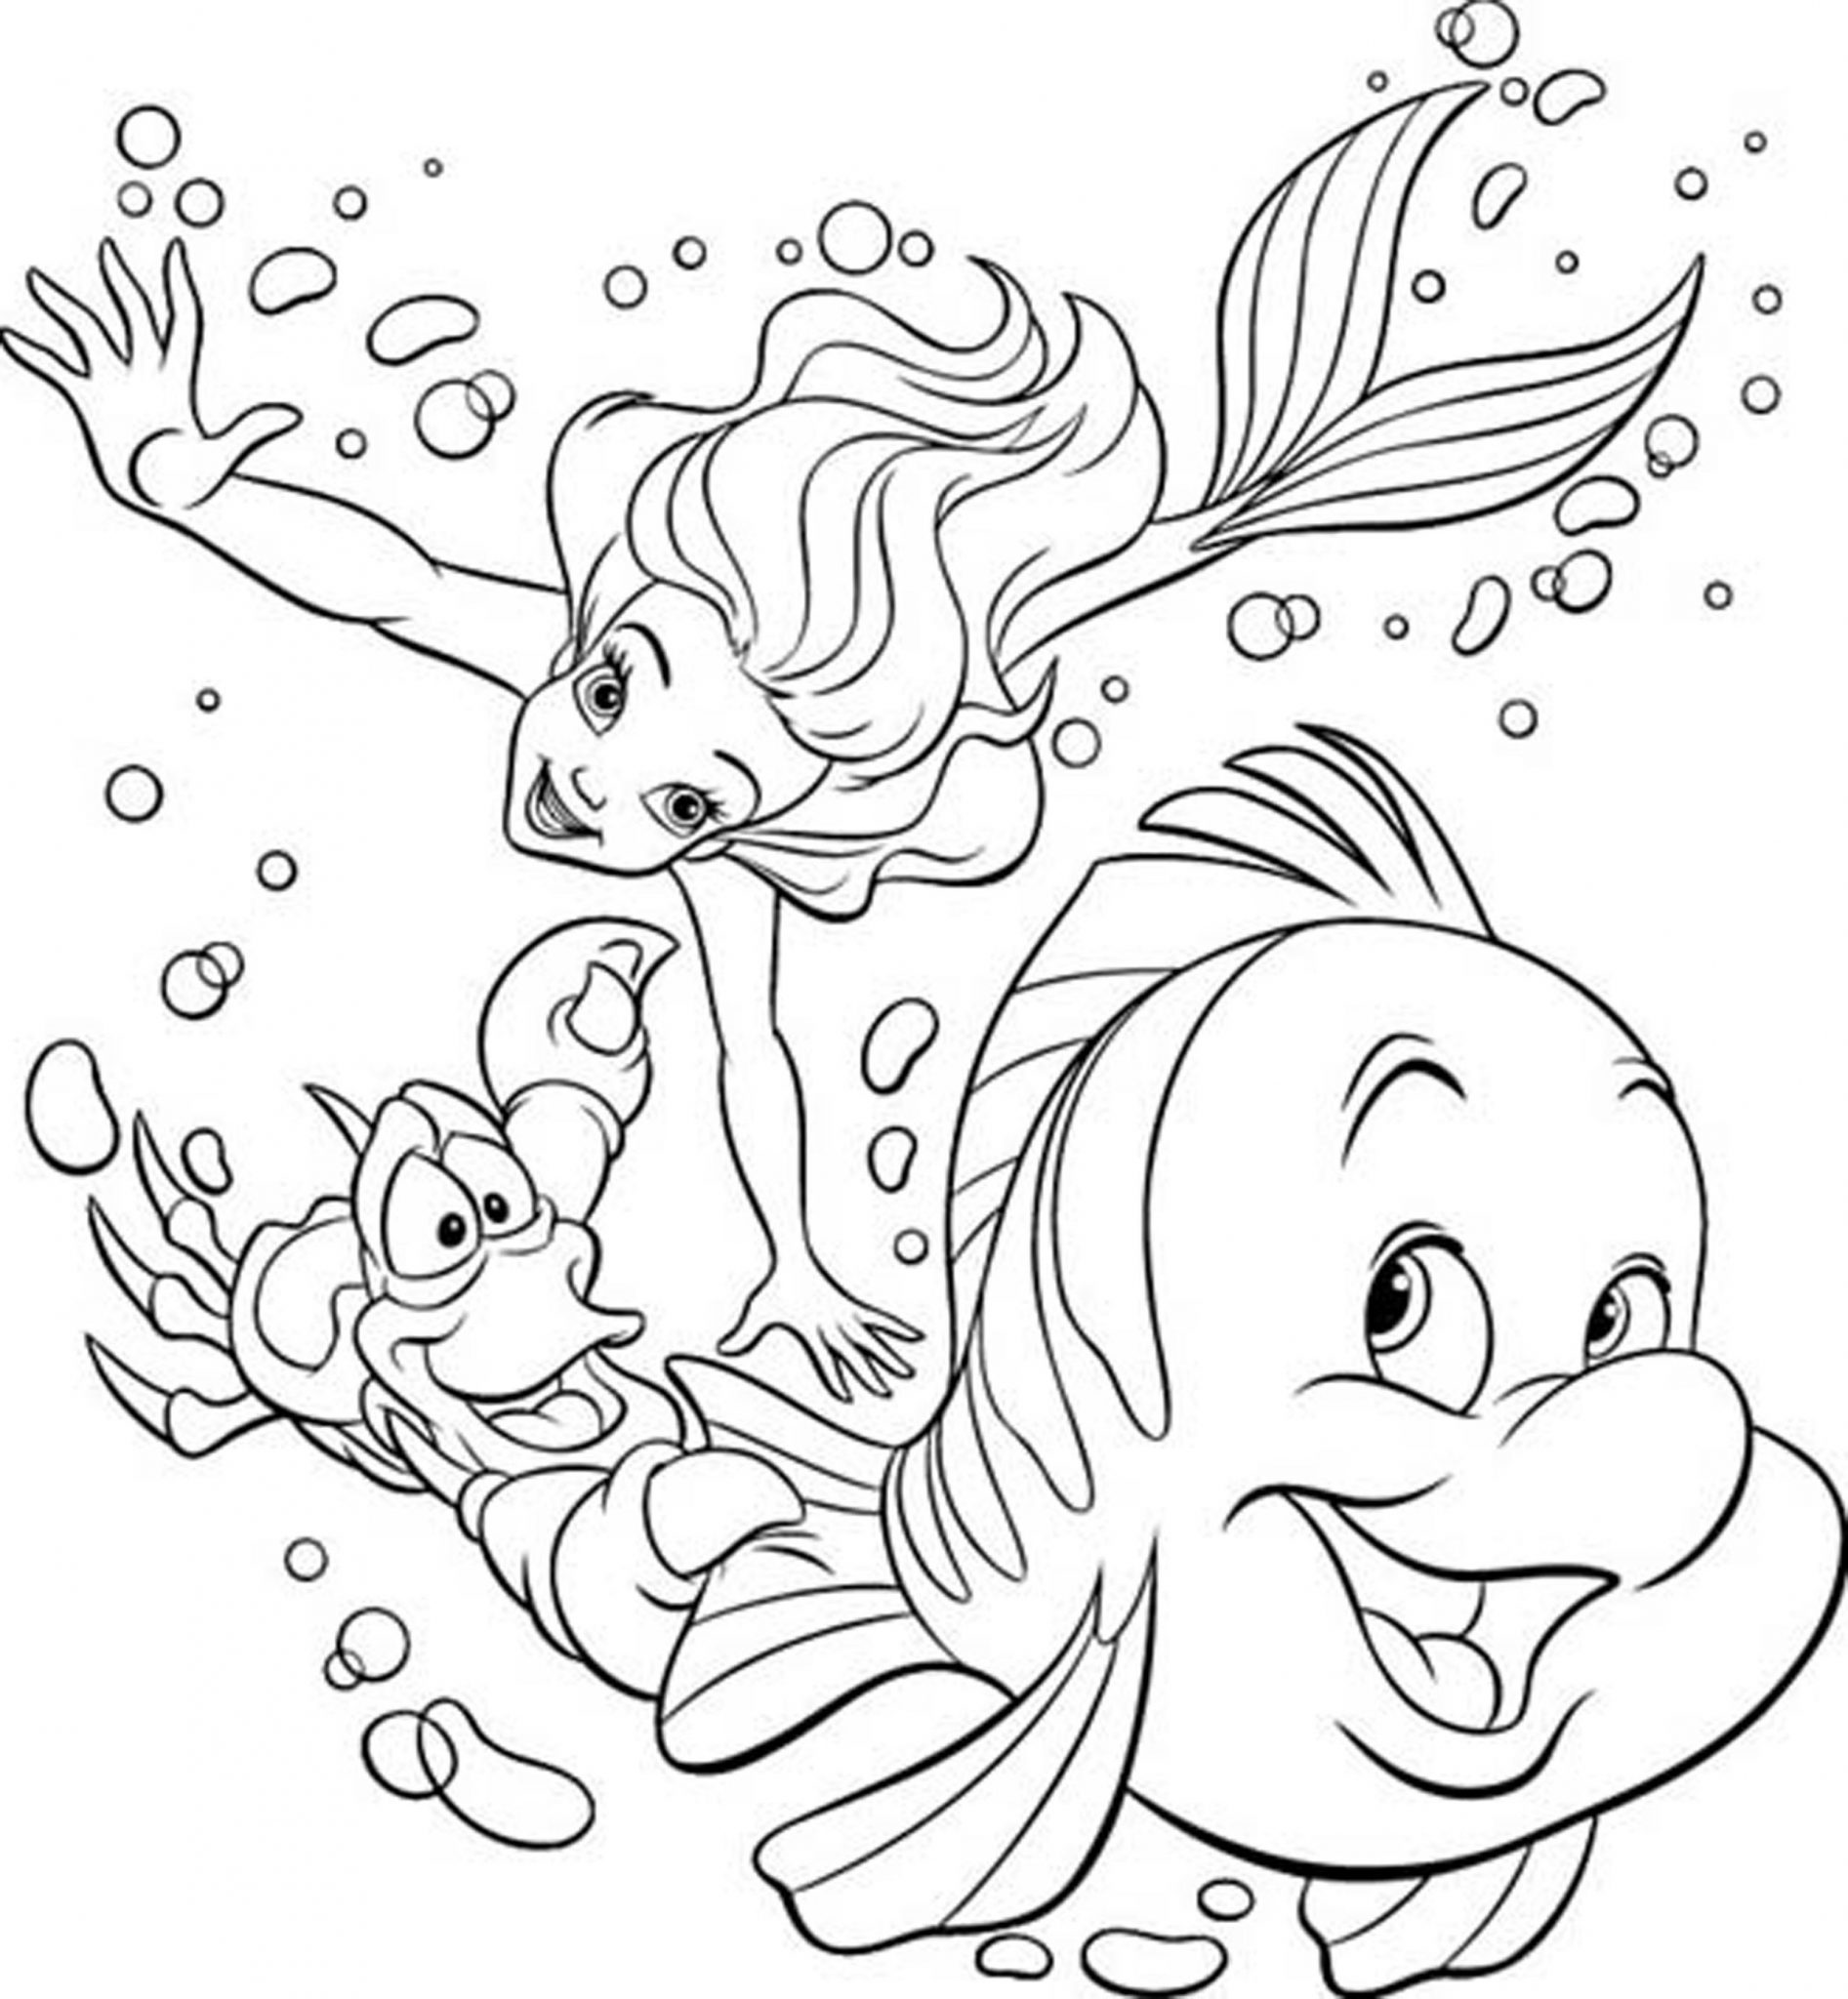 fun colouring pages for kids printable toad coloring pages for kids cool2bkids fun kids pages for colouring